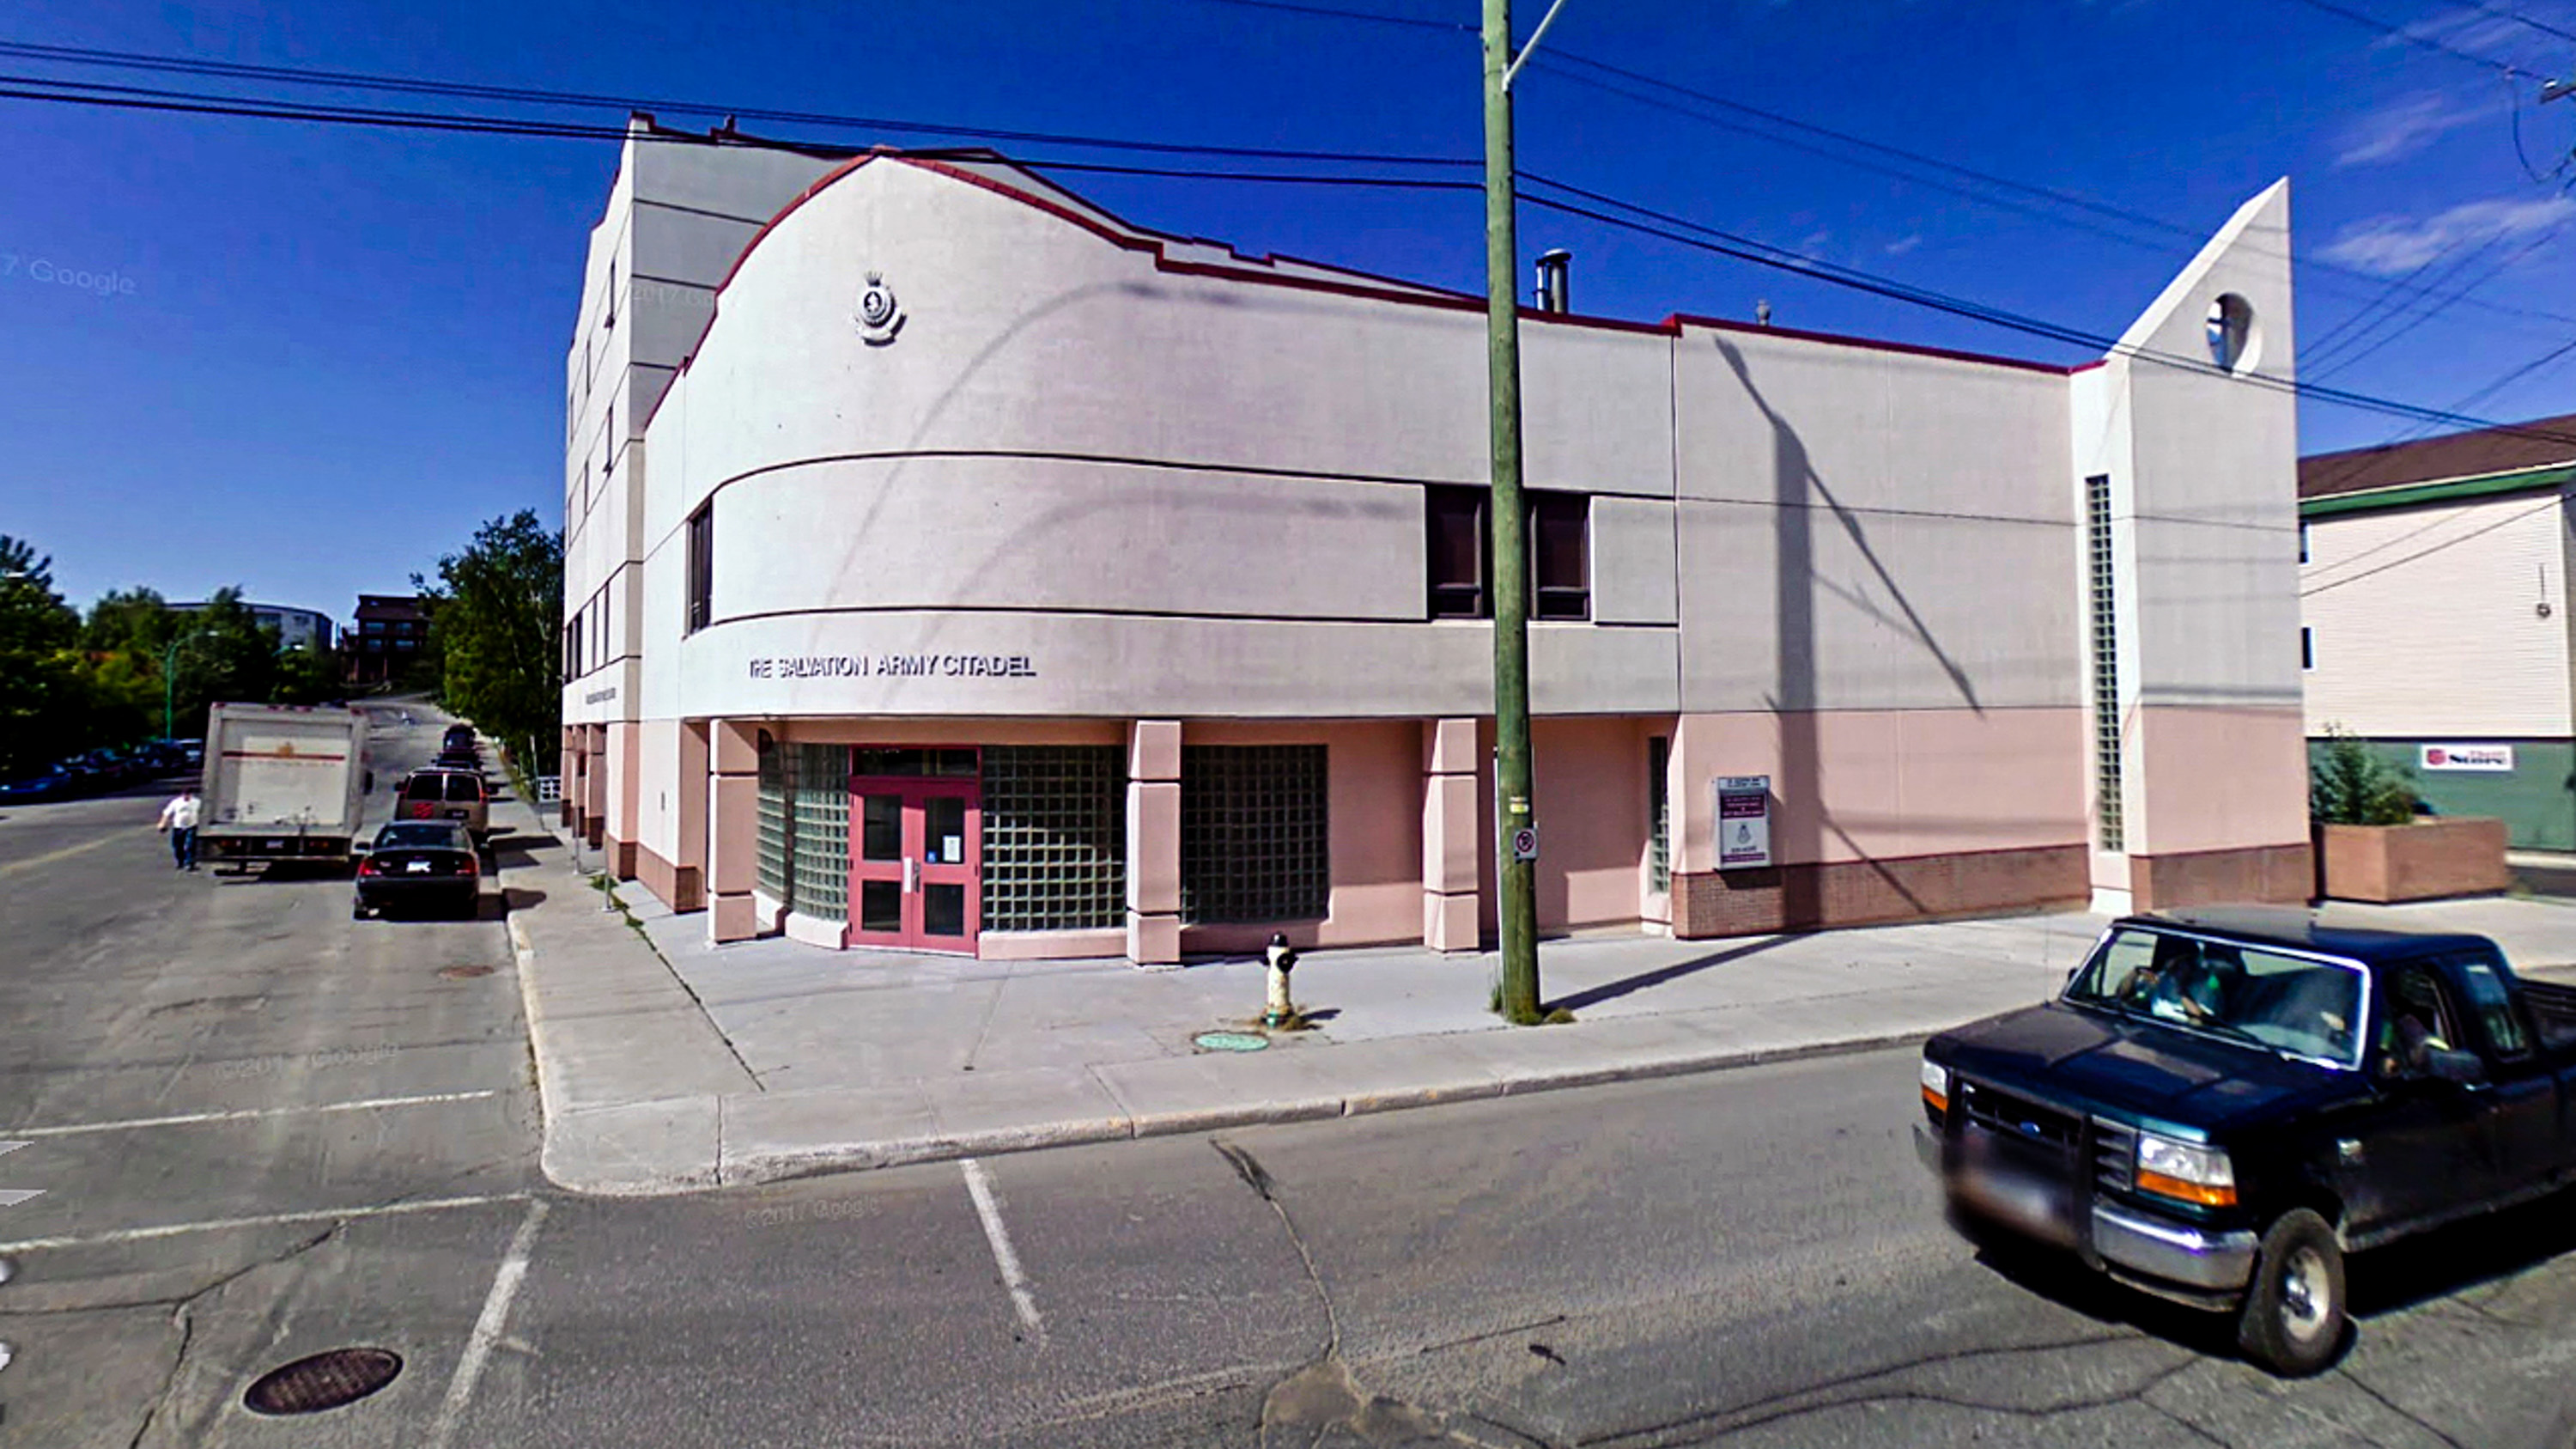 A Google Streetview images shows Yellowknife's Salvation Army building, which previously served as the sobering centre's temporary home